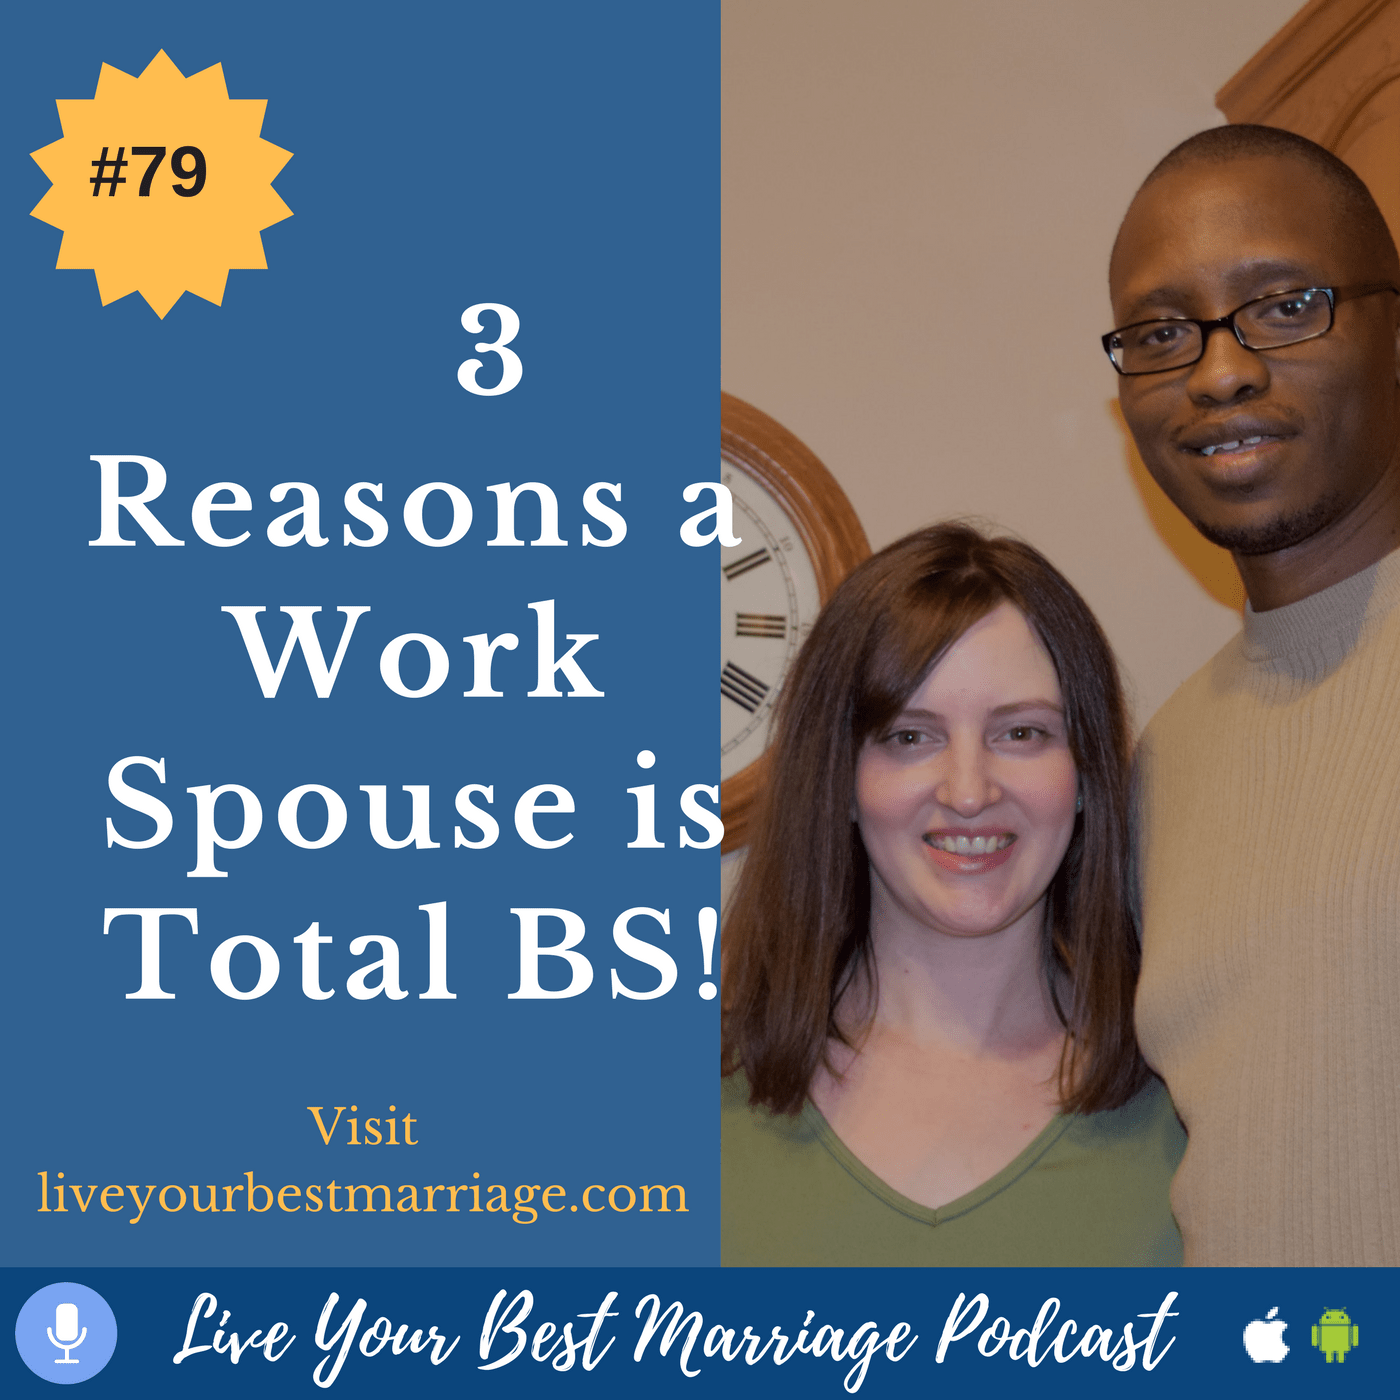 episode-79-3-reasons-why-a-work-spouse-is-total-bs-audio_thumbnail.png